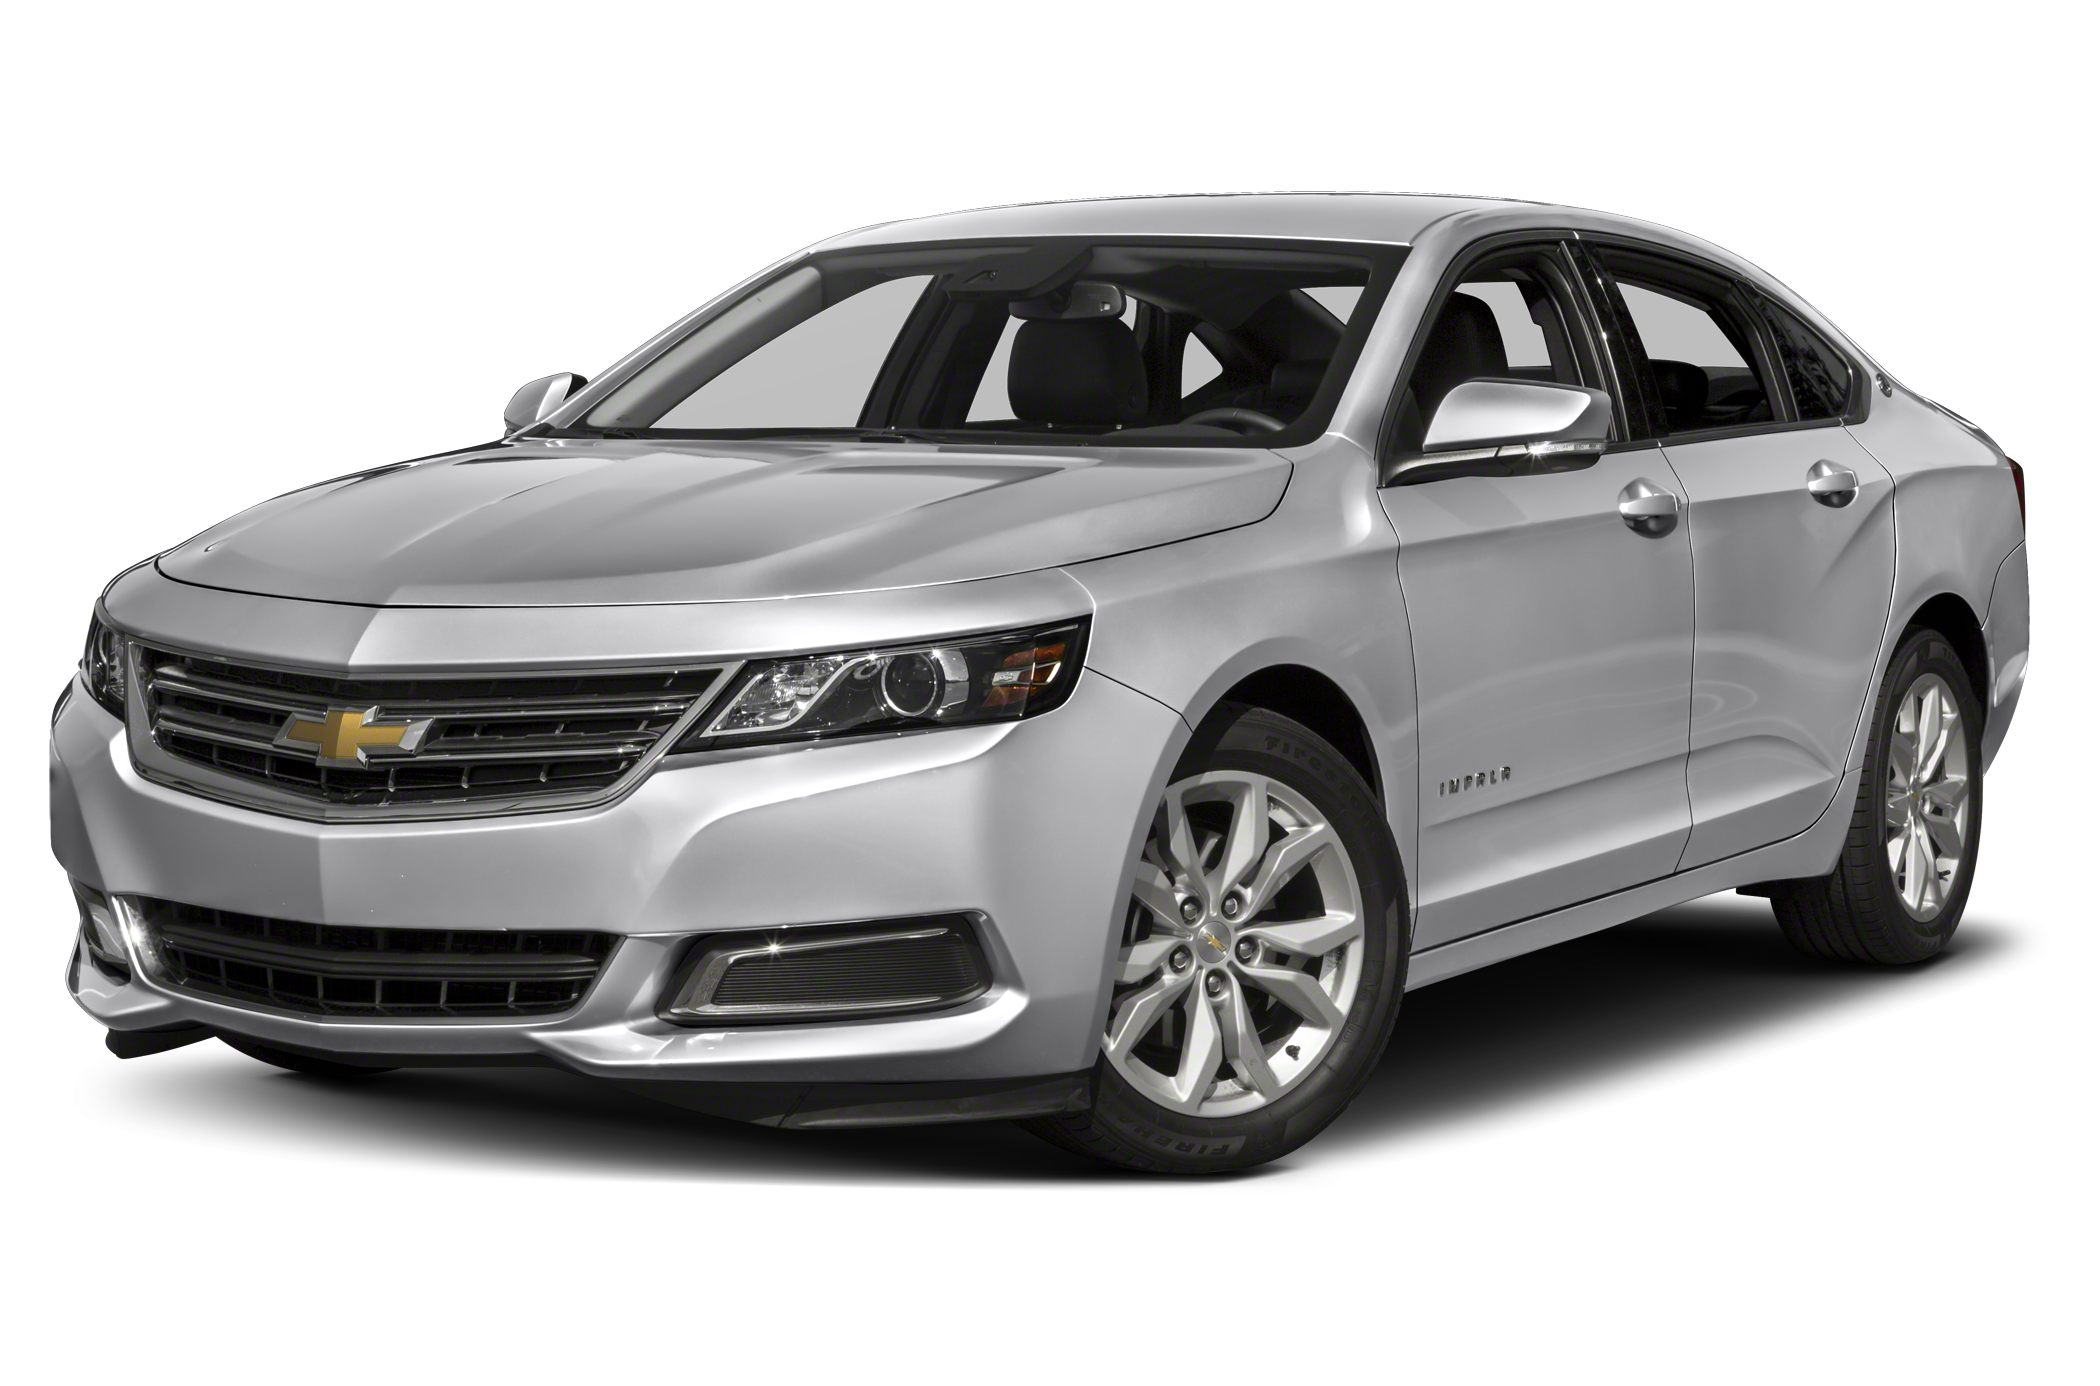 2017 chevrolet impala 1lt for sale vin 1g1105s31hu